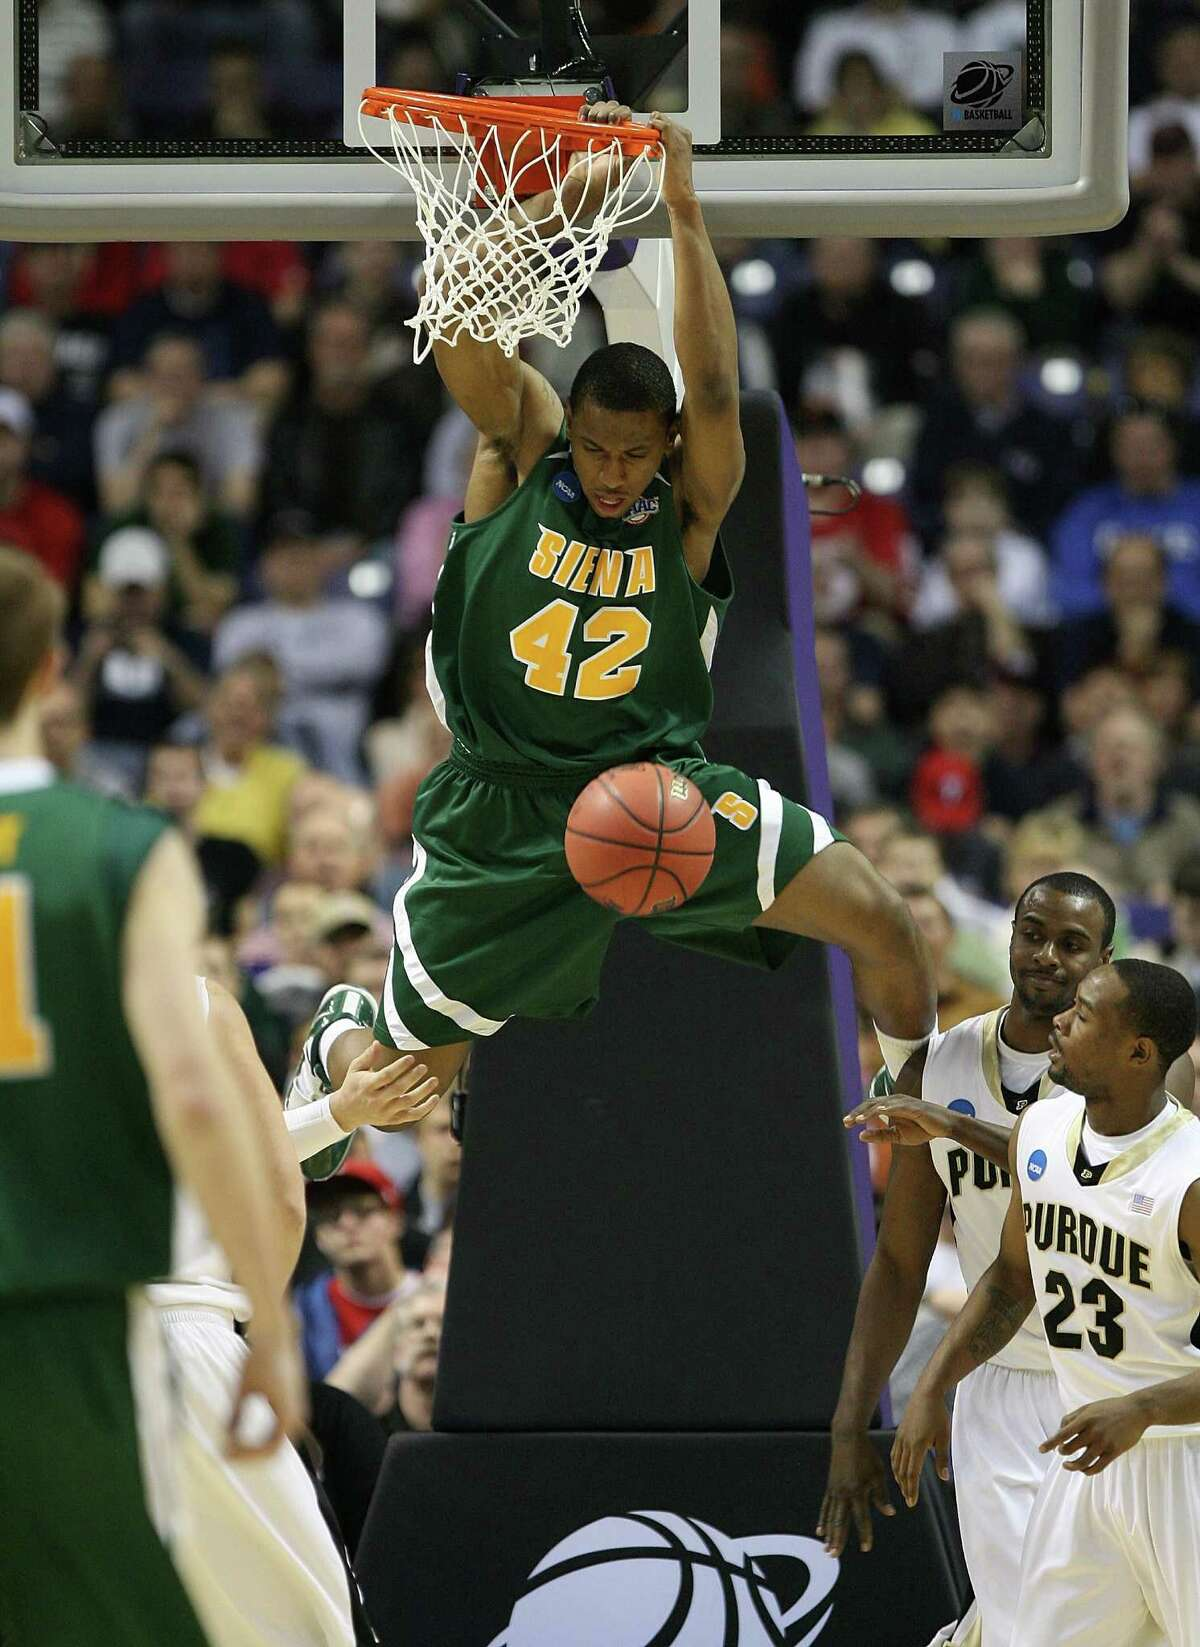 Alex Franklin said he is rooting for the current Siena team to break the school record set in 2010, when Franklin played. (Photo by Otto Greule Jr/Getty Images)